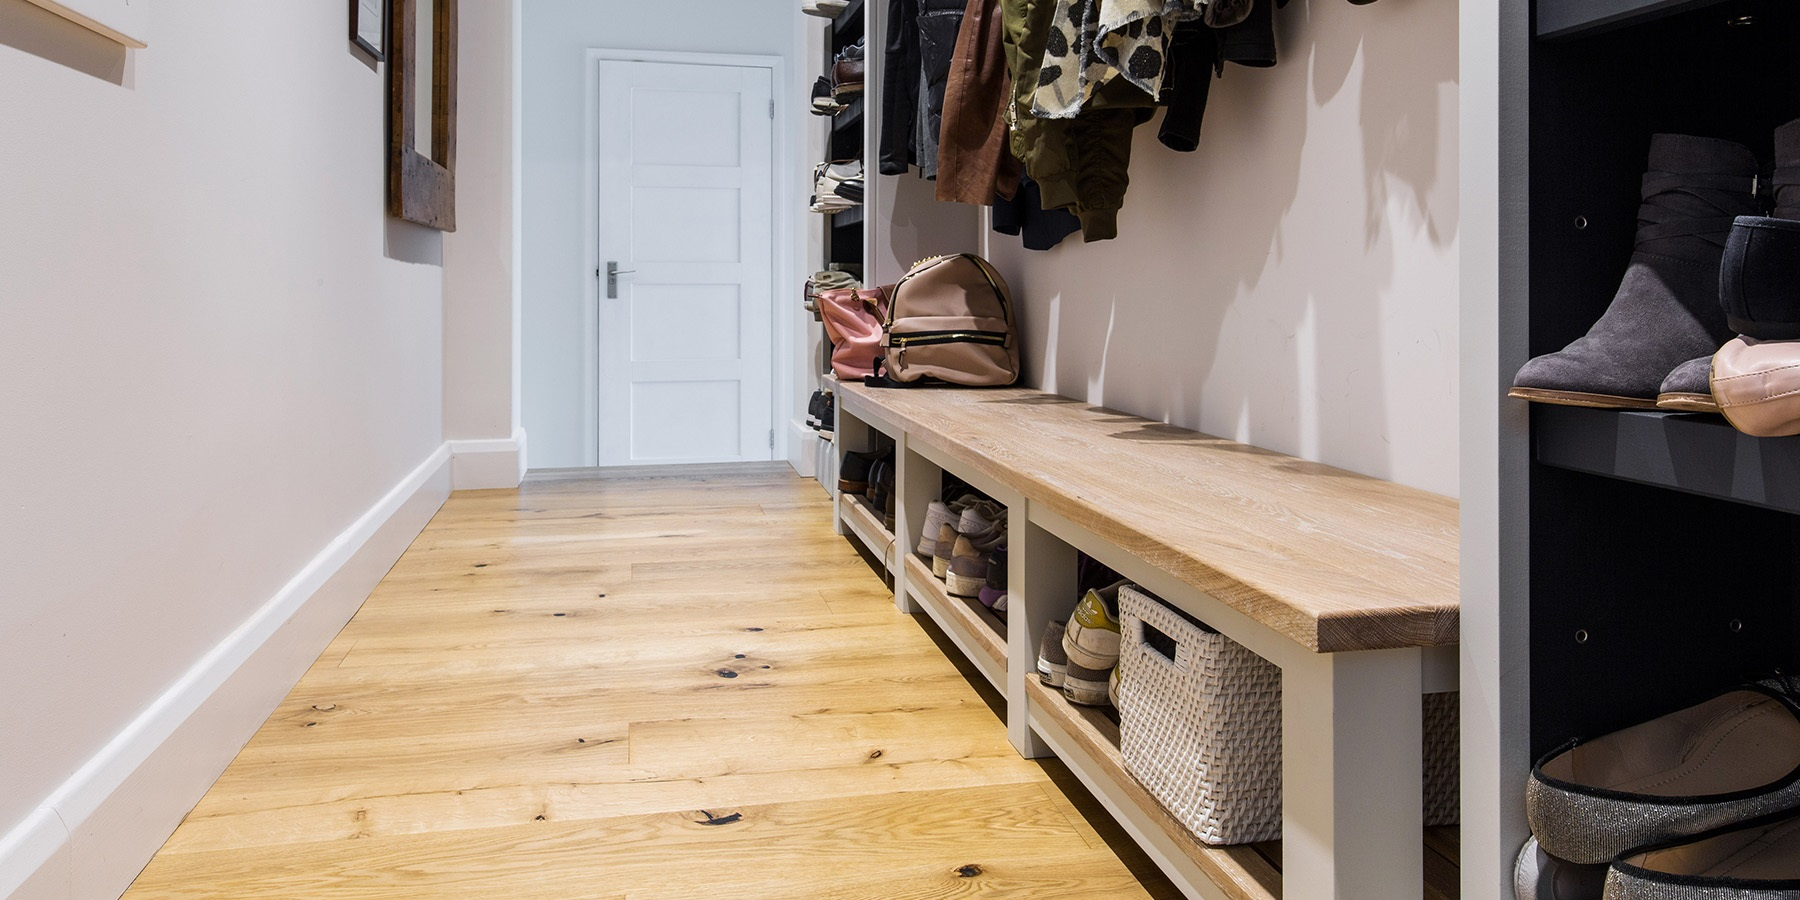 Bespoke Bootroom Shoe Storage - Handmade bench seating with shoe storage.